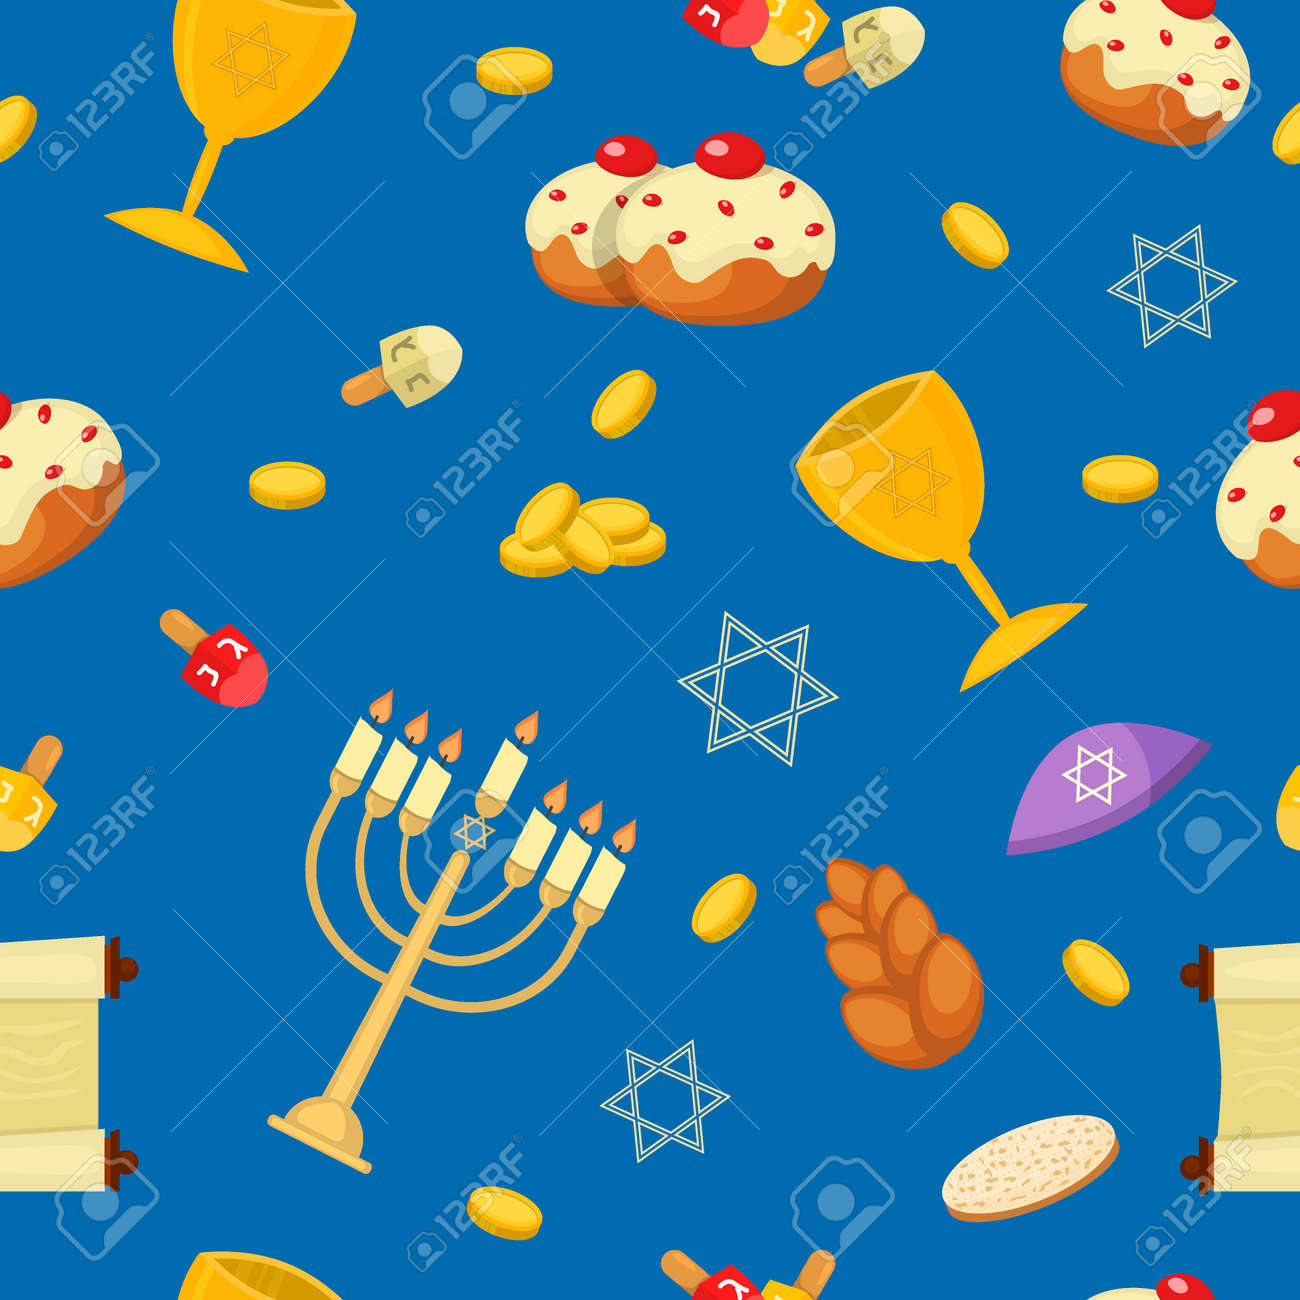 Hanukkah seamless pattern with menorah, dreidel, coins, donuts, bows and Jewish star